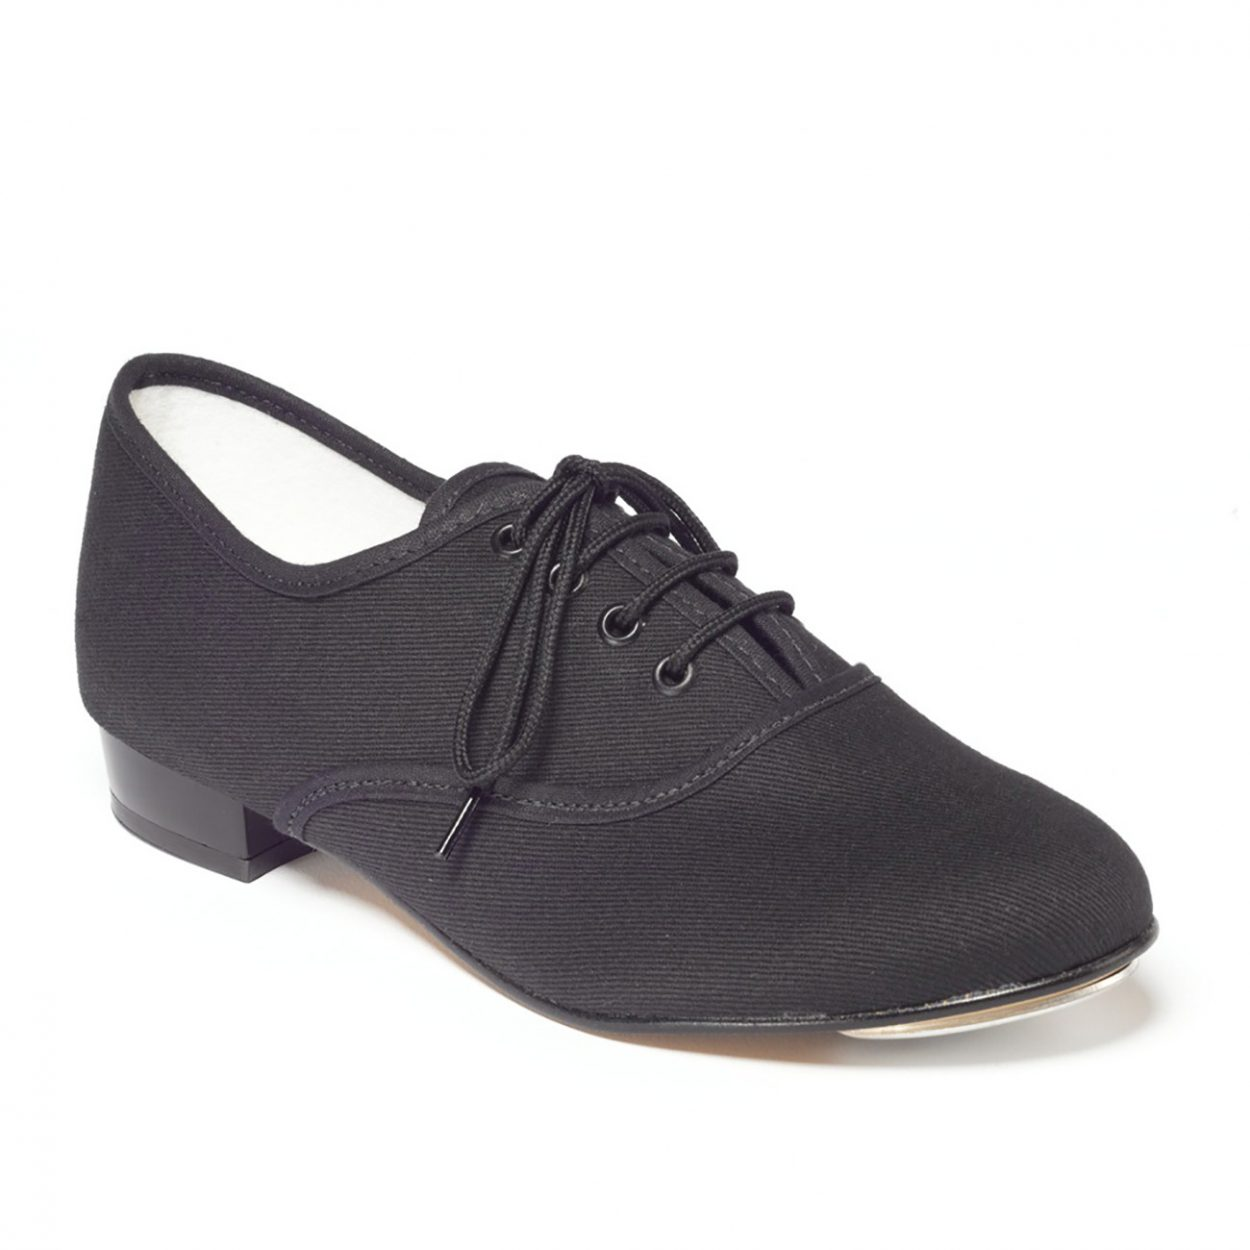 Black Canvas Tap Shoe Low Heel